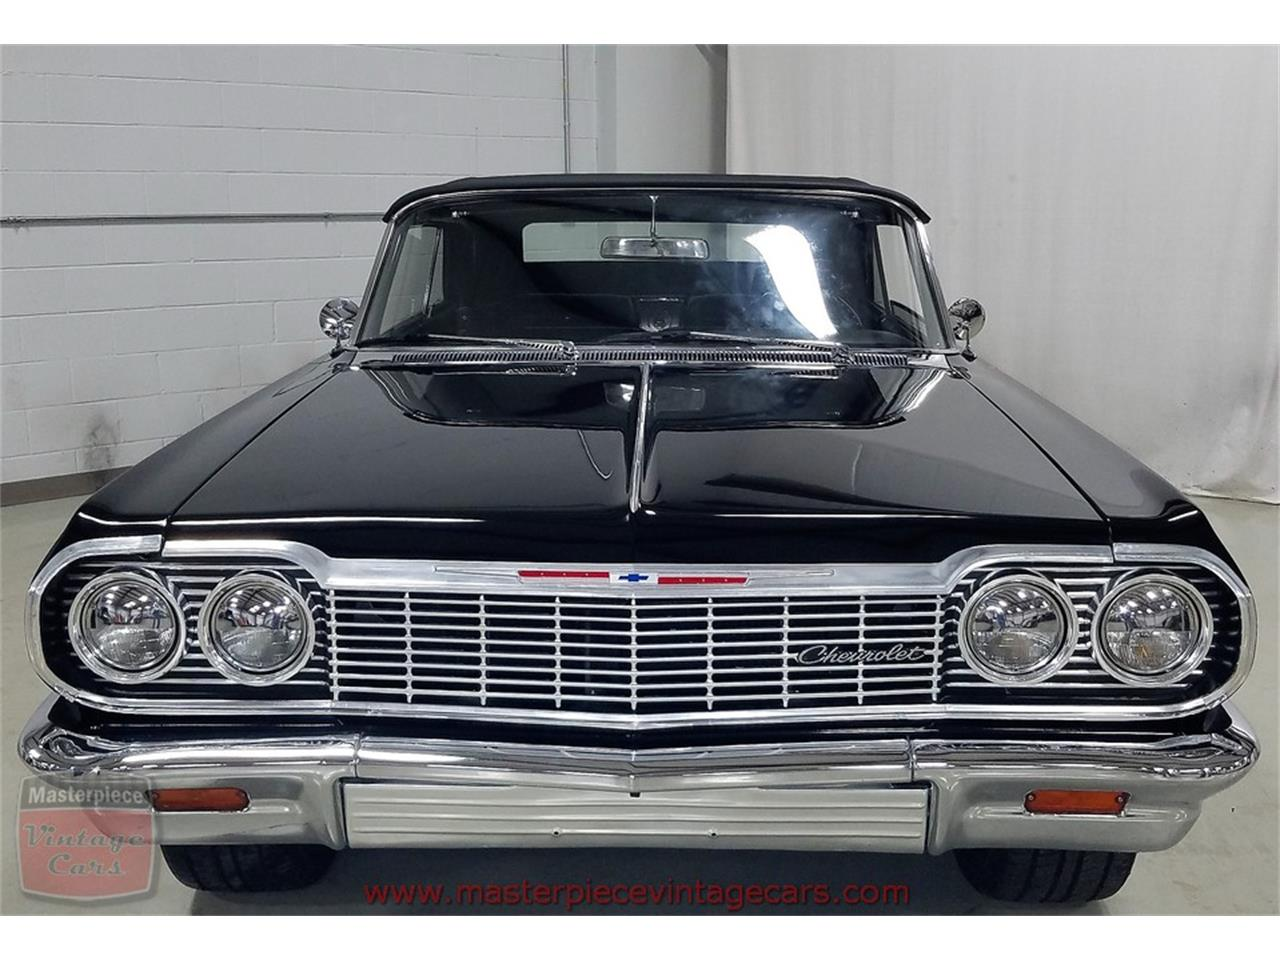 Large Picture of '64 Chevrolet Impala located in Indiana Offered by Masterpiece Vintage Cars - LBXB